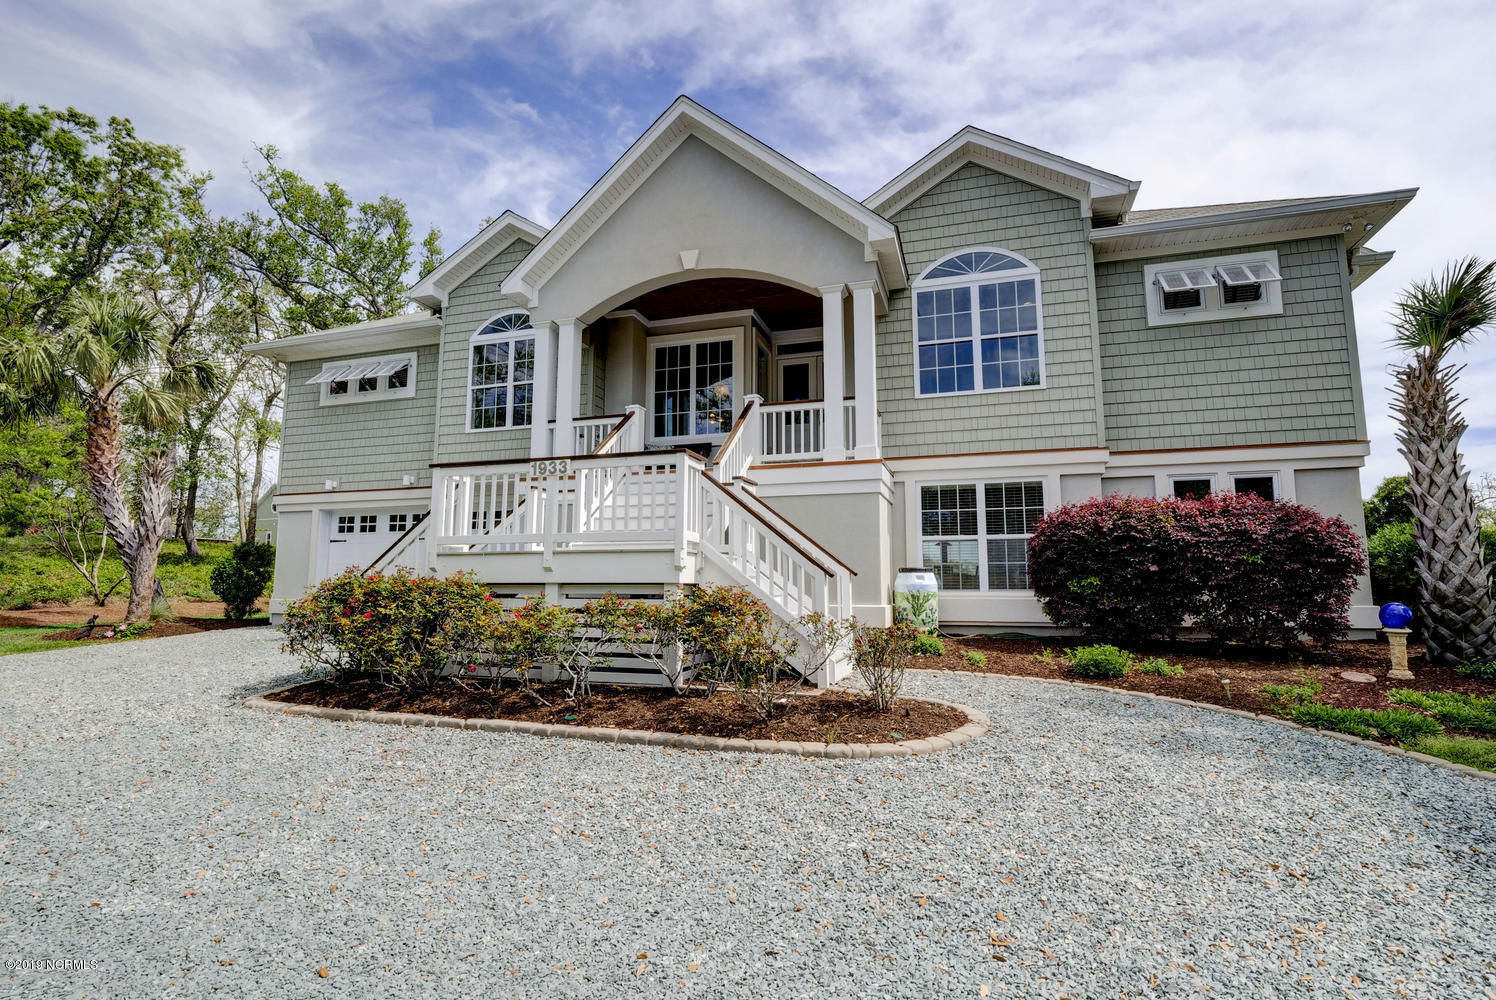 Lifestyle Homes w/in-Law Suites | Sold Buy the Sea Realty